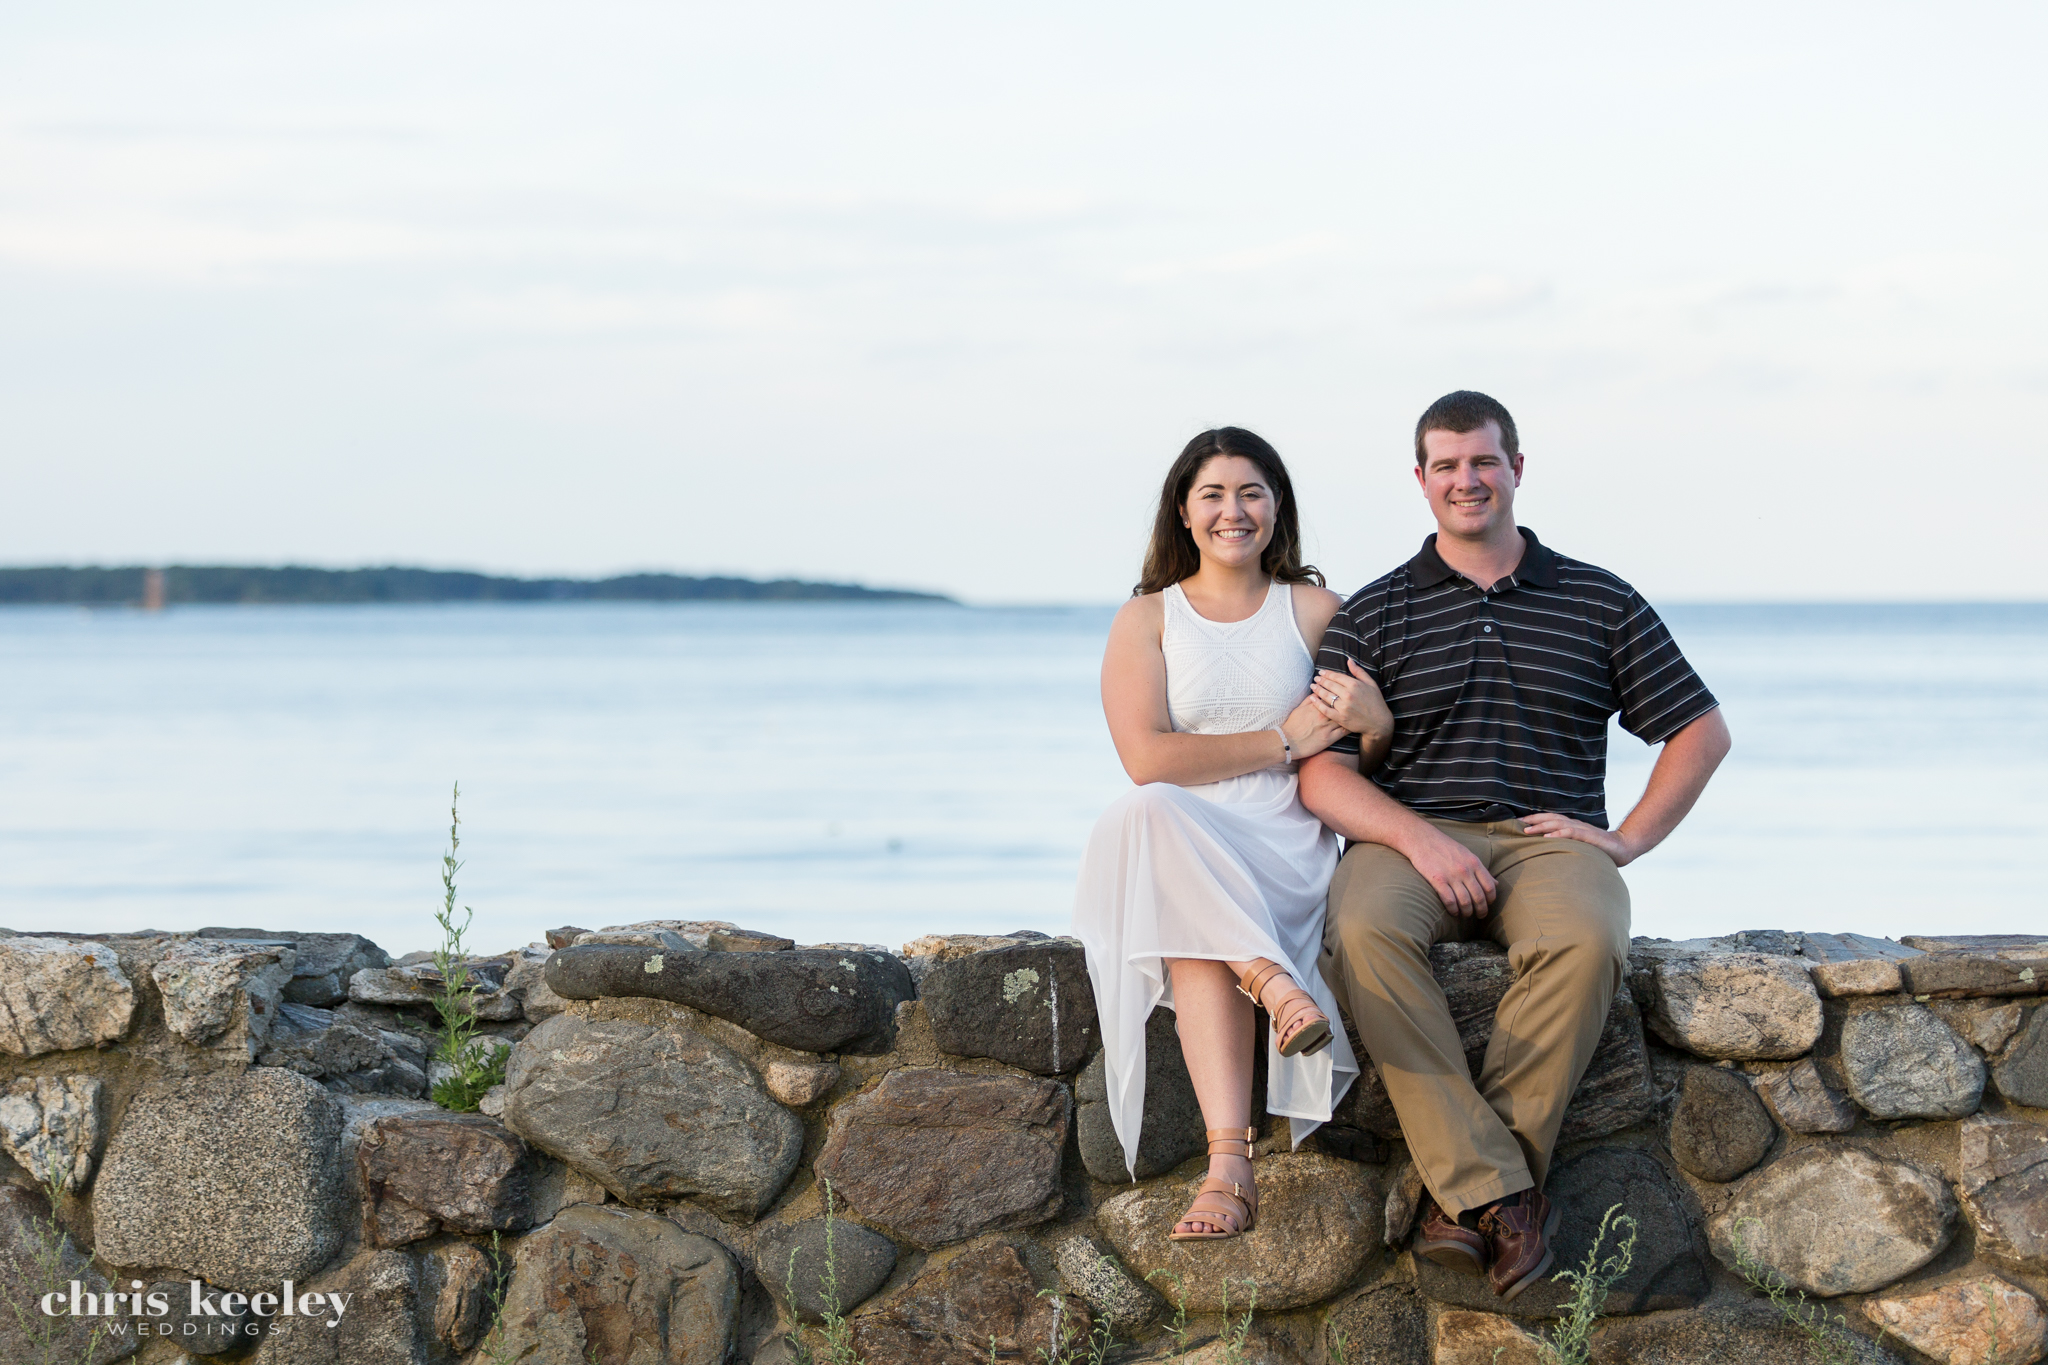 45-engagement-wedding-pictures-rye-new-hampshire-chris-keeley-weddings.jpg